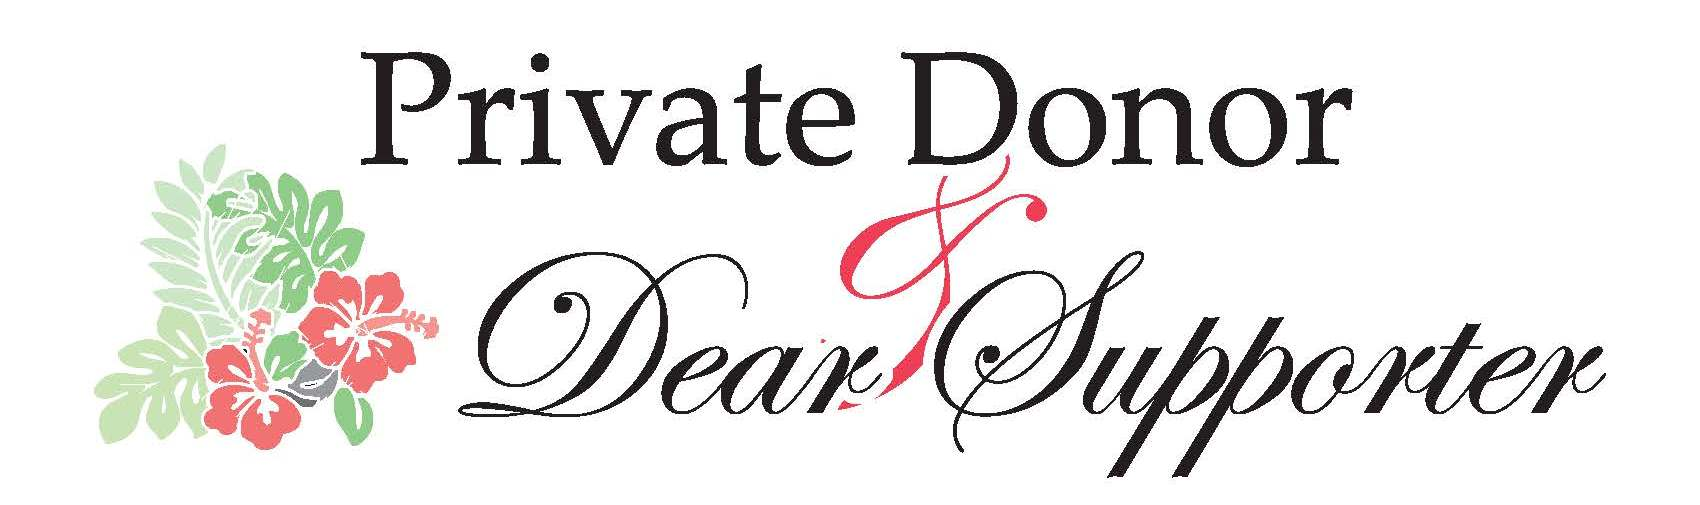 Private Donor & Dear Supporter